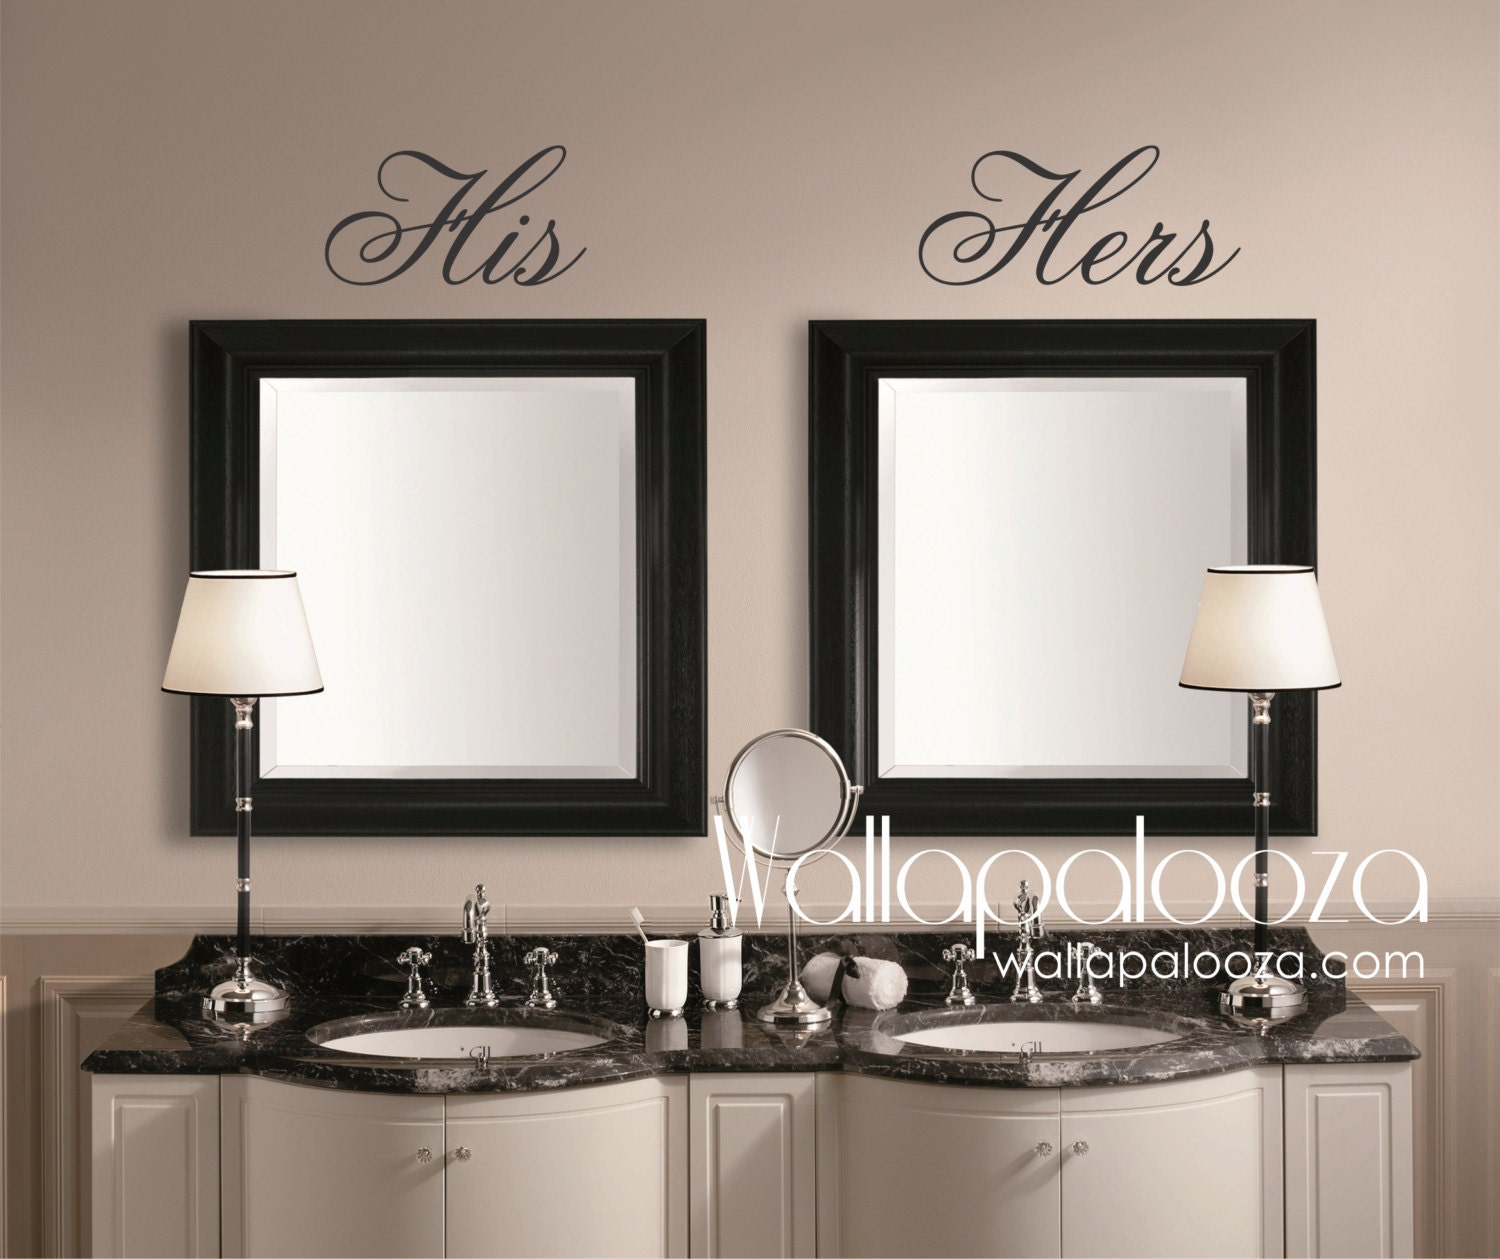 Bathroom wall decor His and Hers Wall Decal Mirror Decal